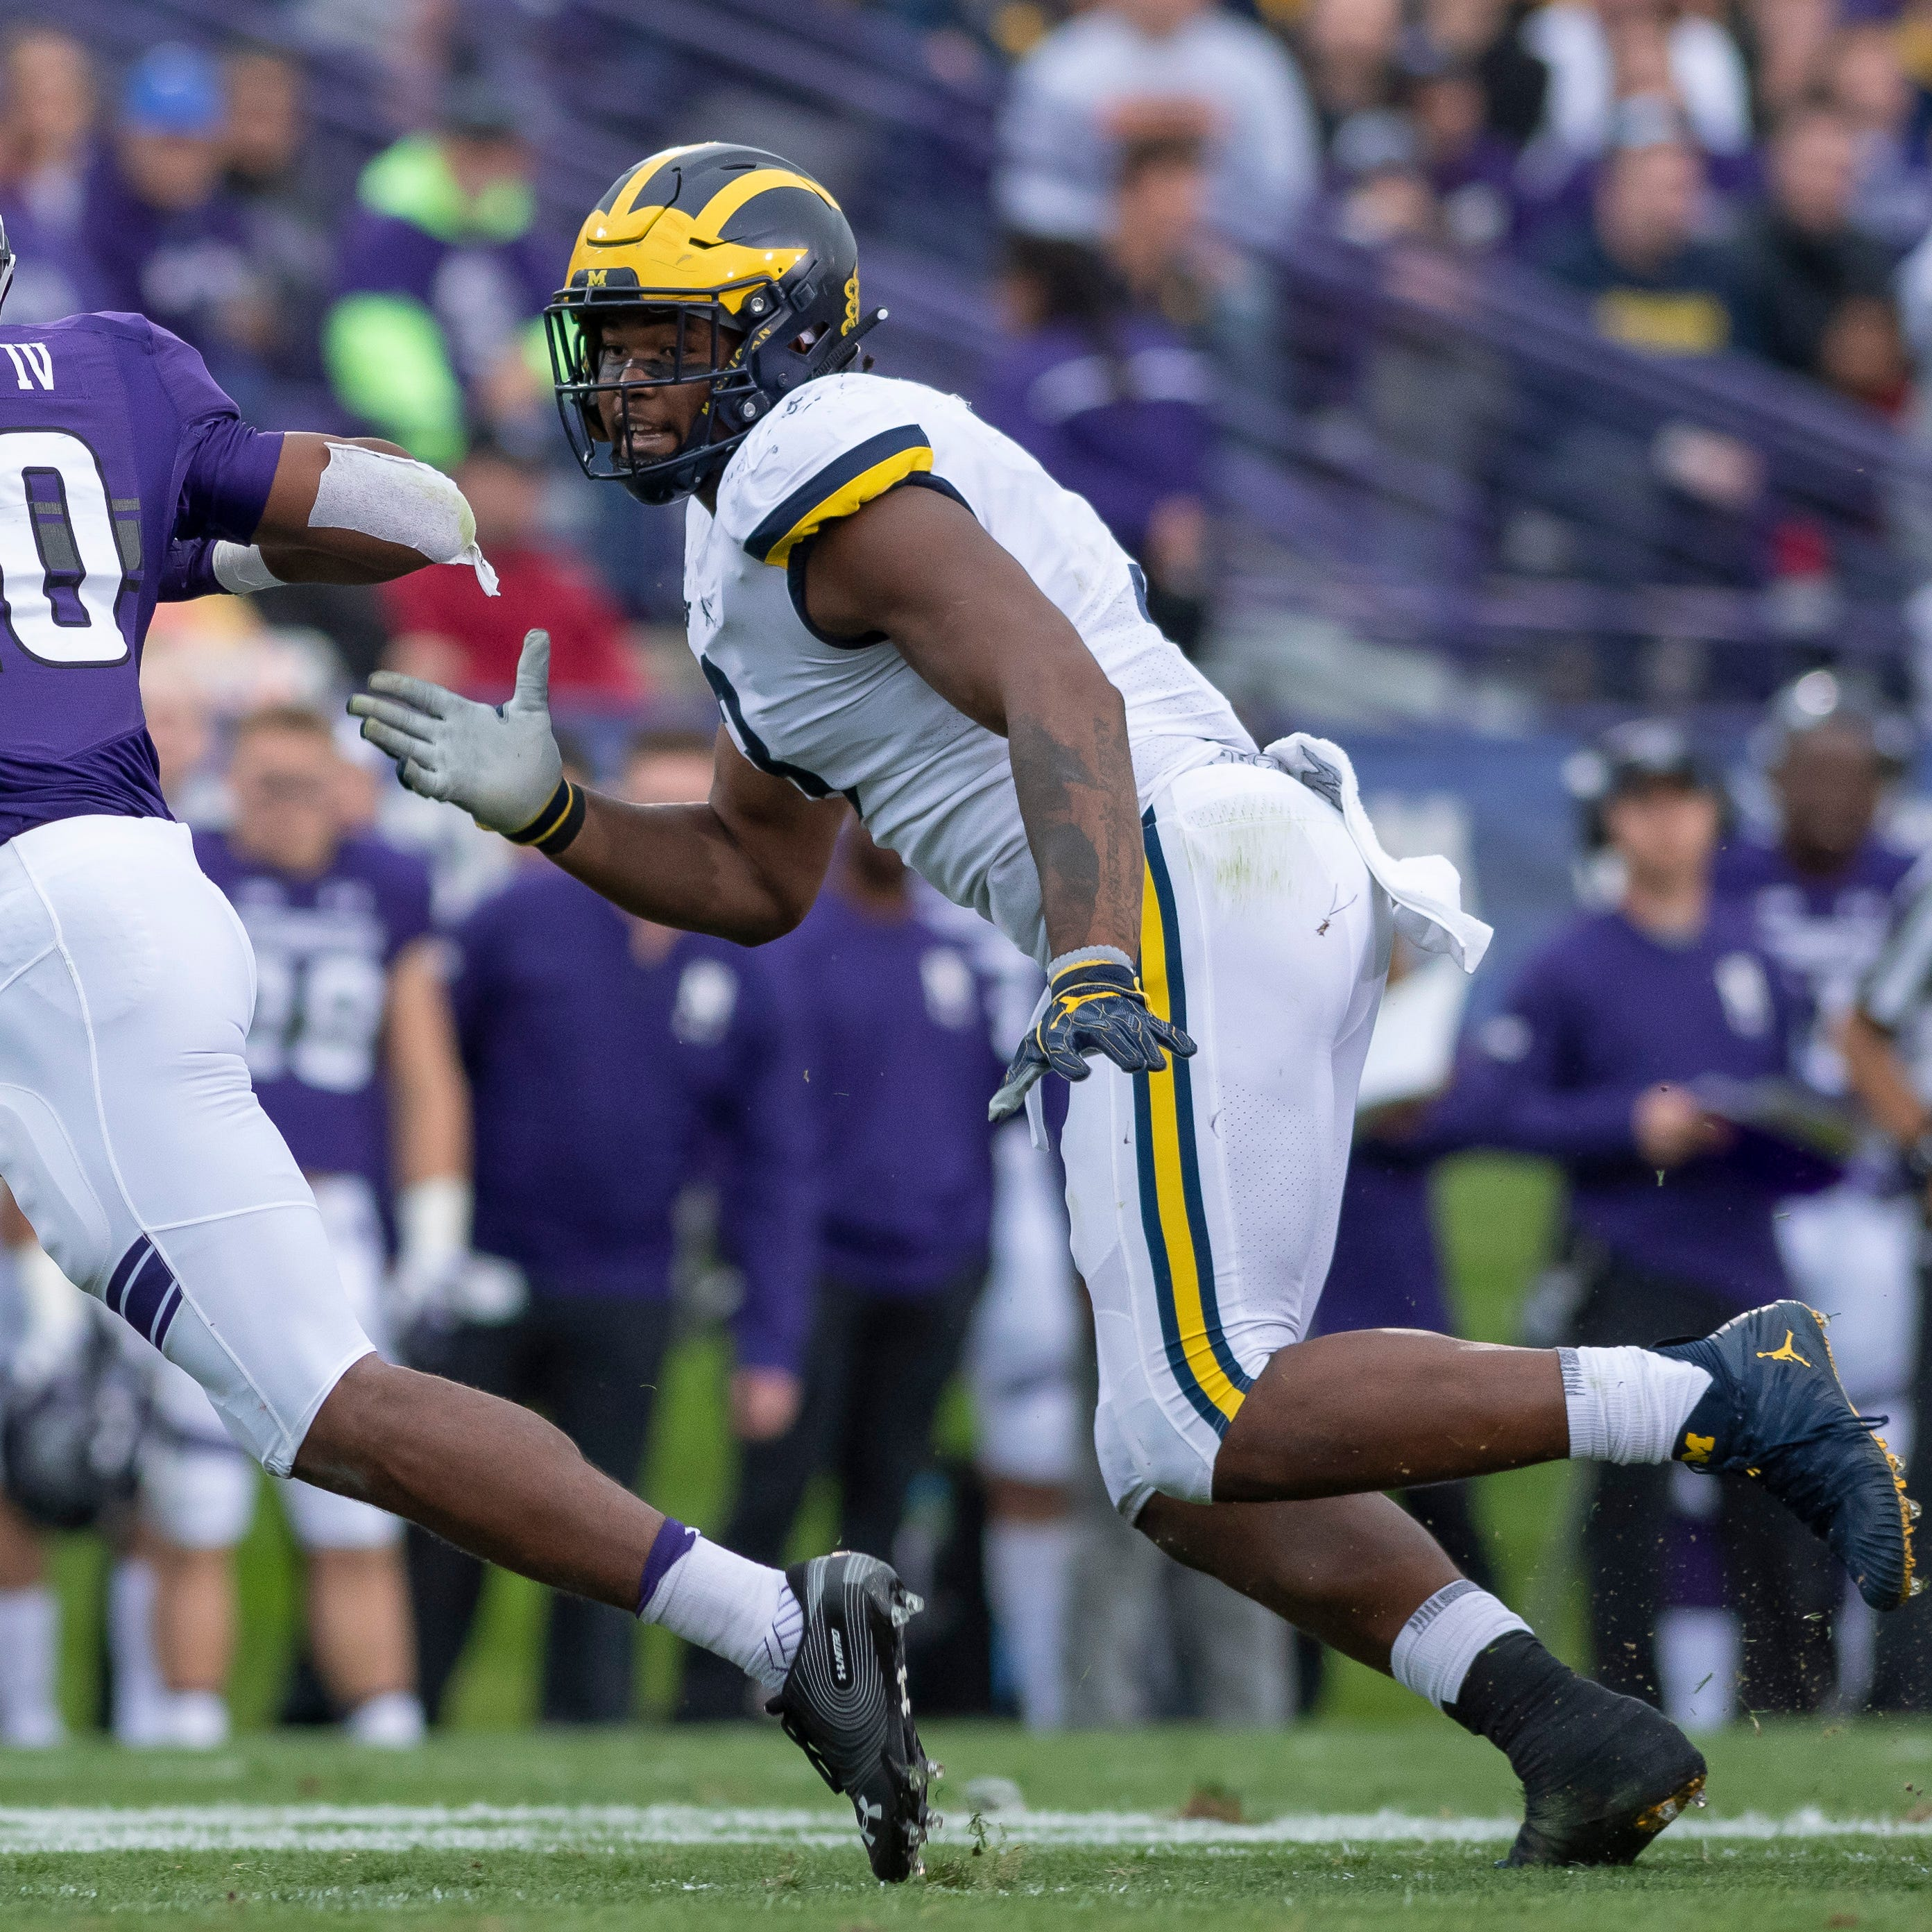 Lions go for Michigan's Rashan Gary in mock draft